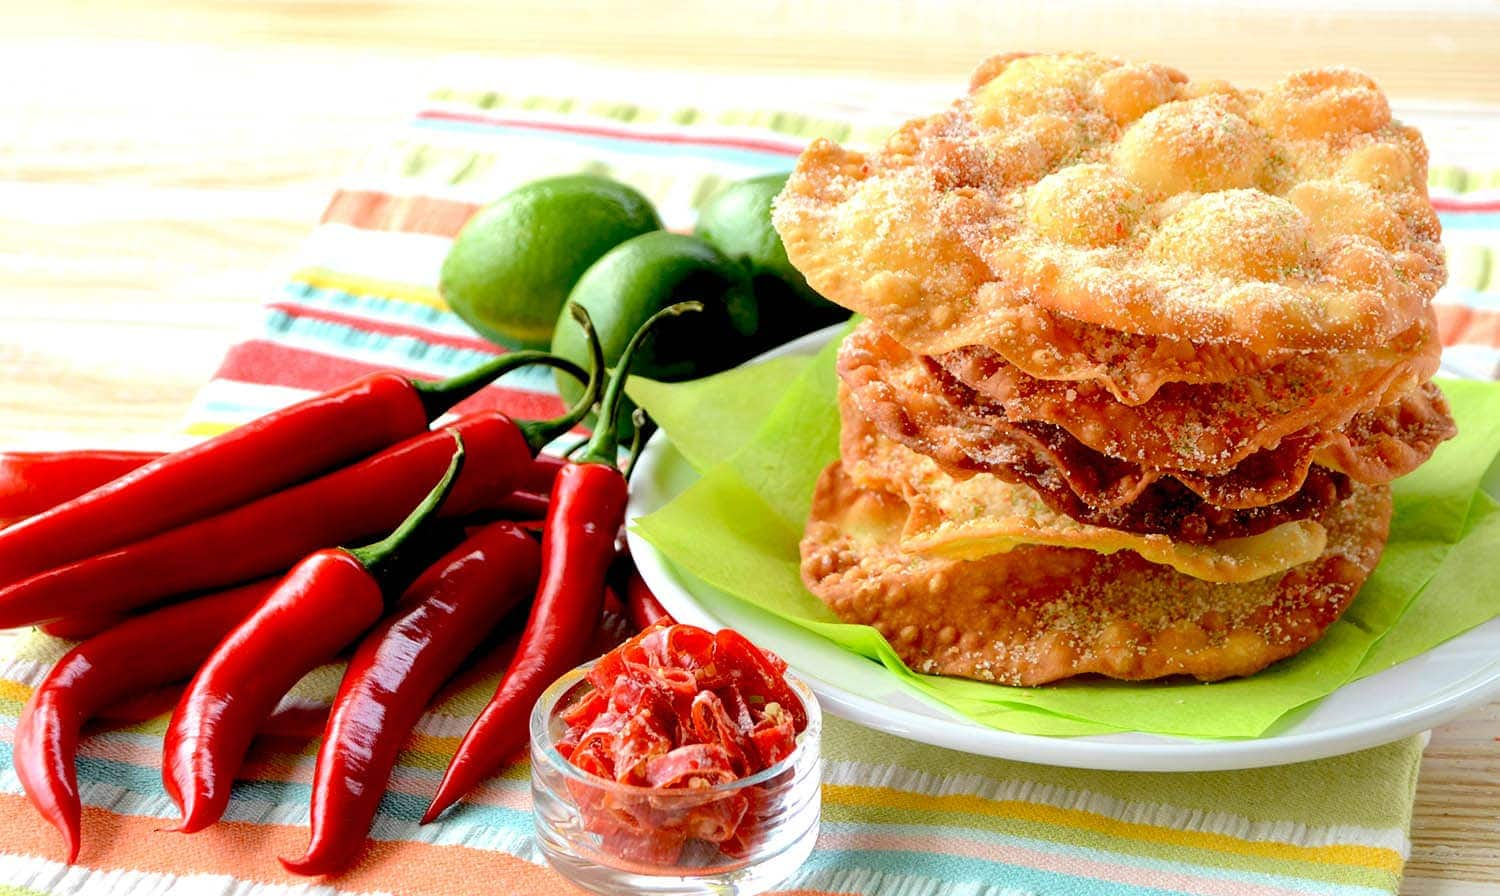 Spice up Taco Tuesday! These crispy, sweet and spicy Candied Chile and Lime Mexican Bunuelos are a perfect complement to your Cinco de Mayo or any Mexican dinner. | vintagekitty.com